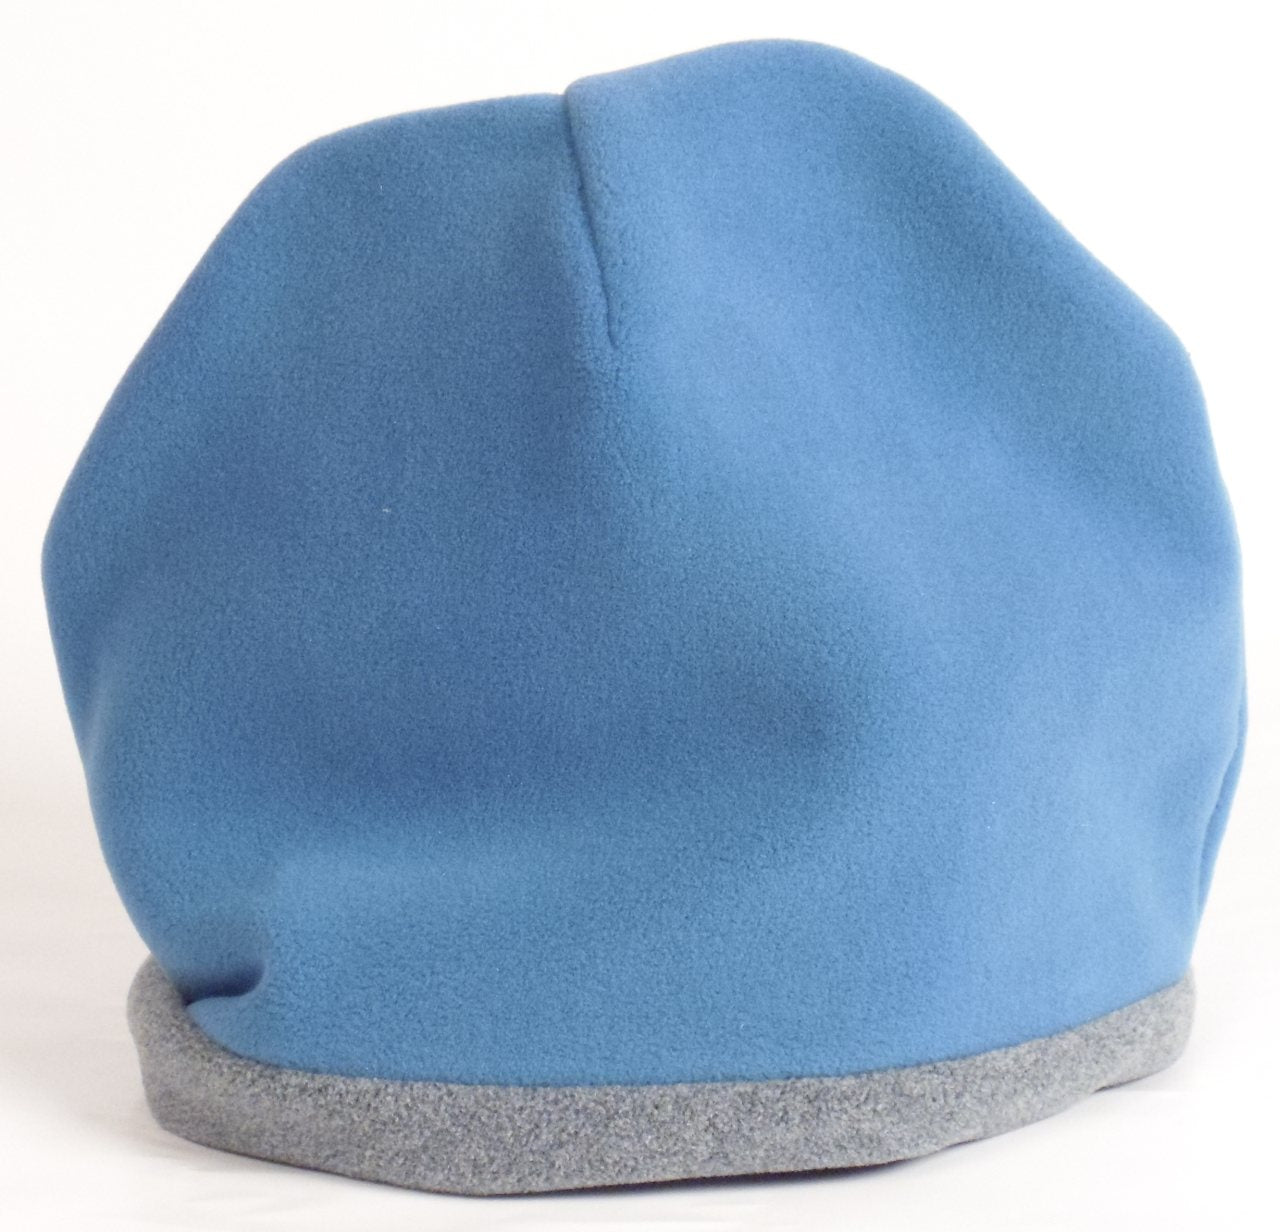 Comfort Hat - Reversible 2-Tone, 2 layer Polartec Microfiber Fleece - Broadened Horizons Direct